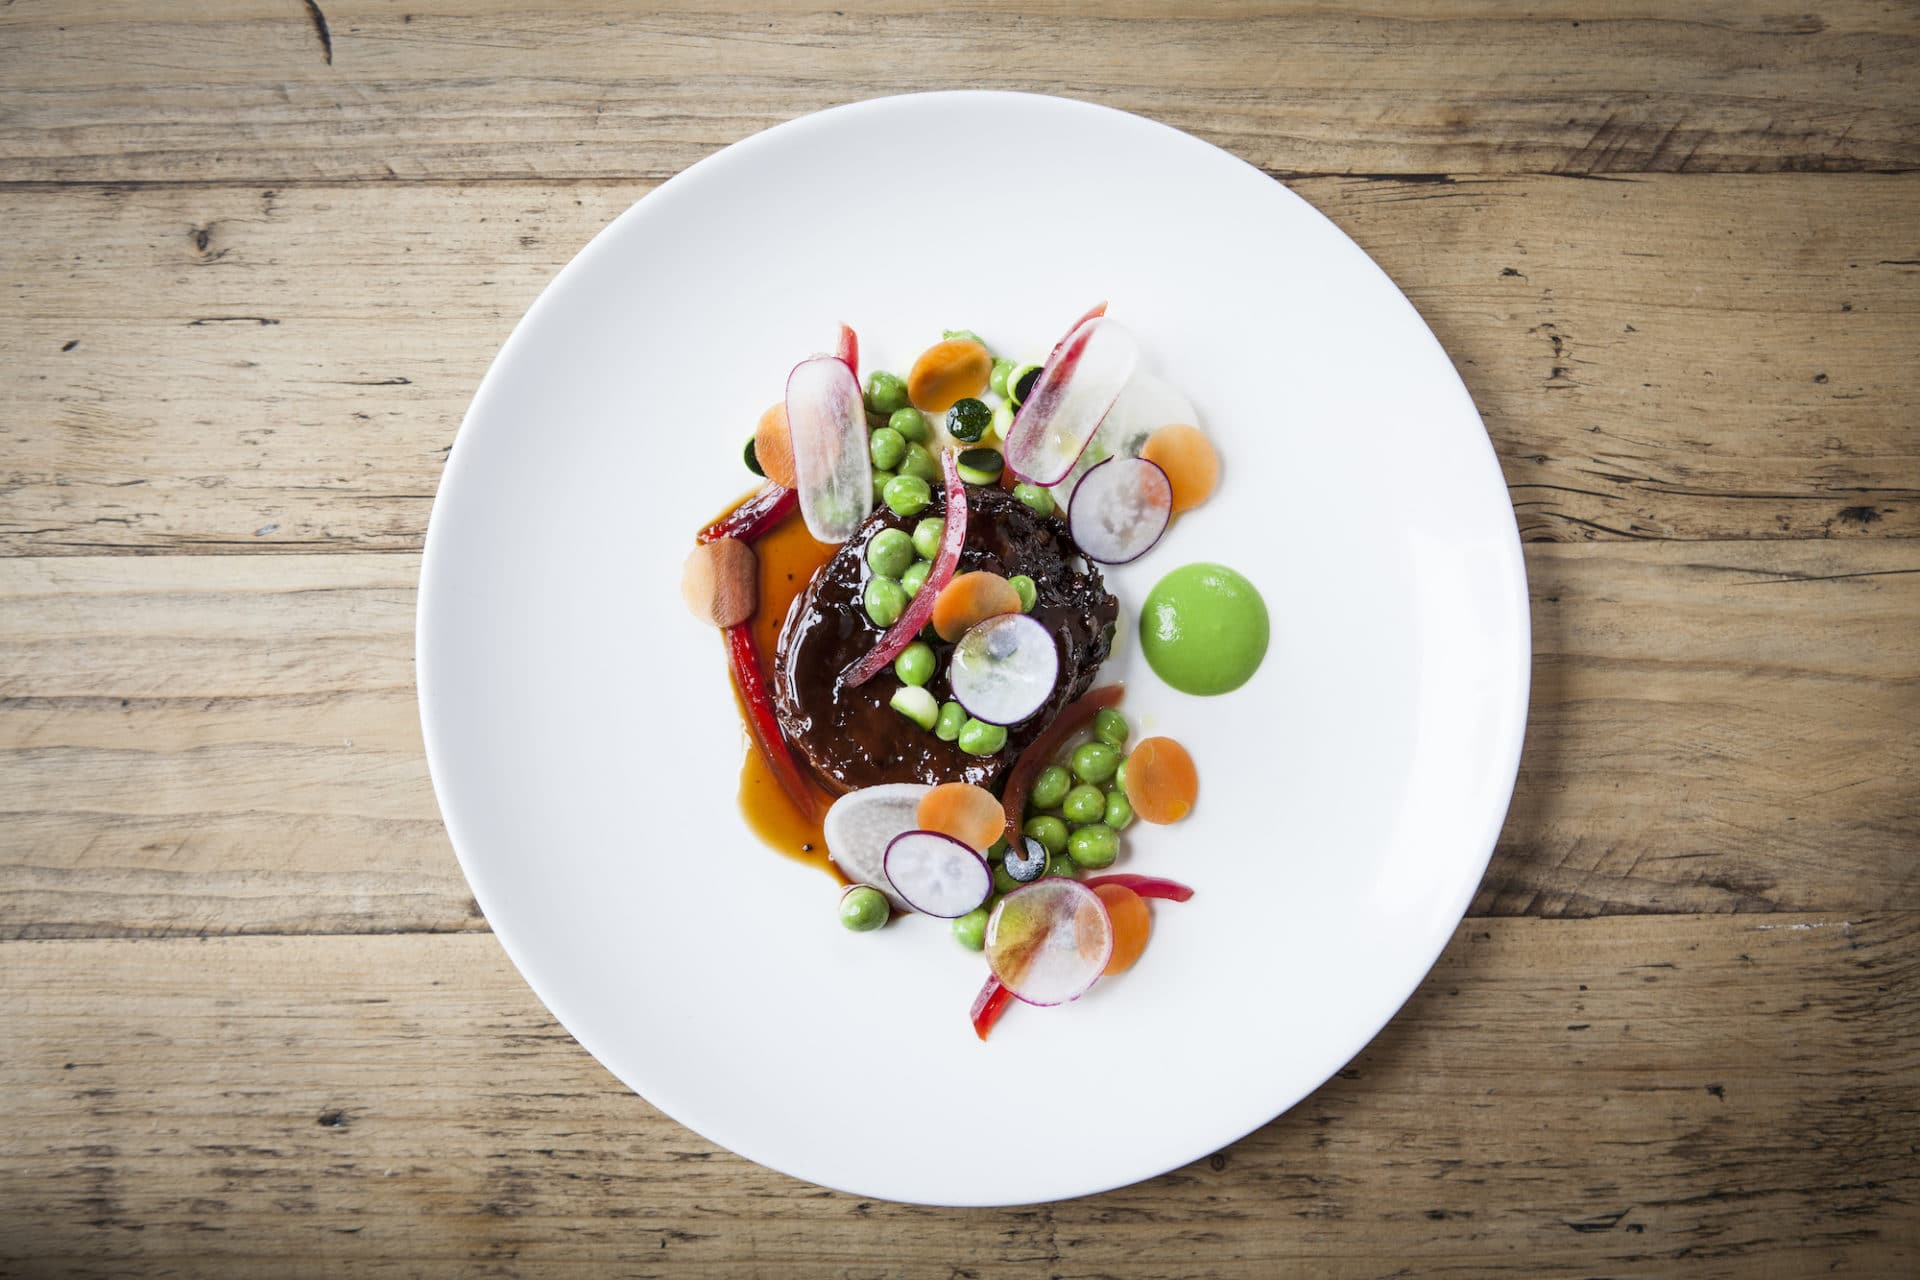 Ox Tongue Dish by Michael Bremner at 64 Degrees